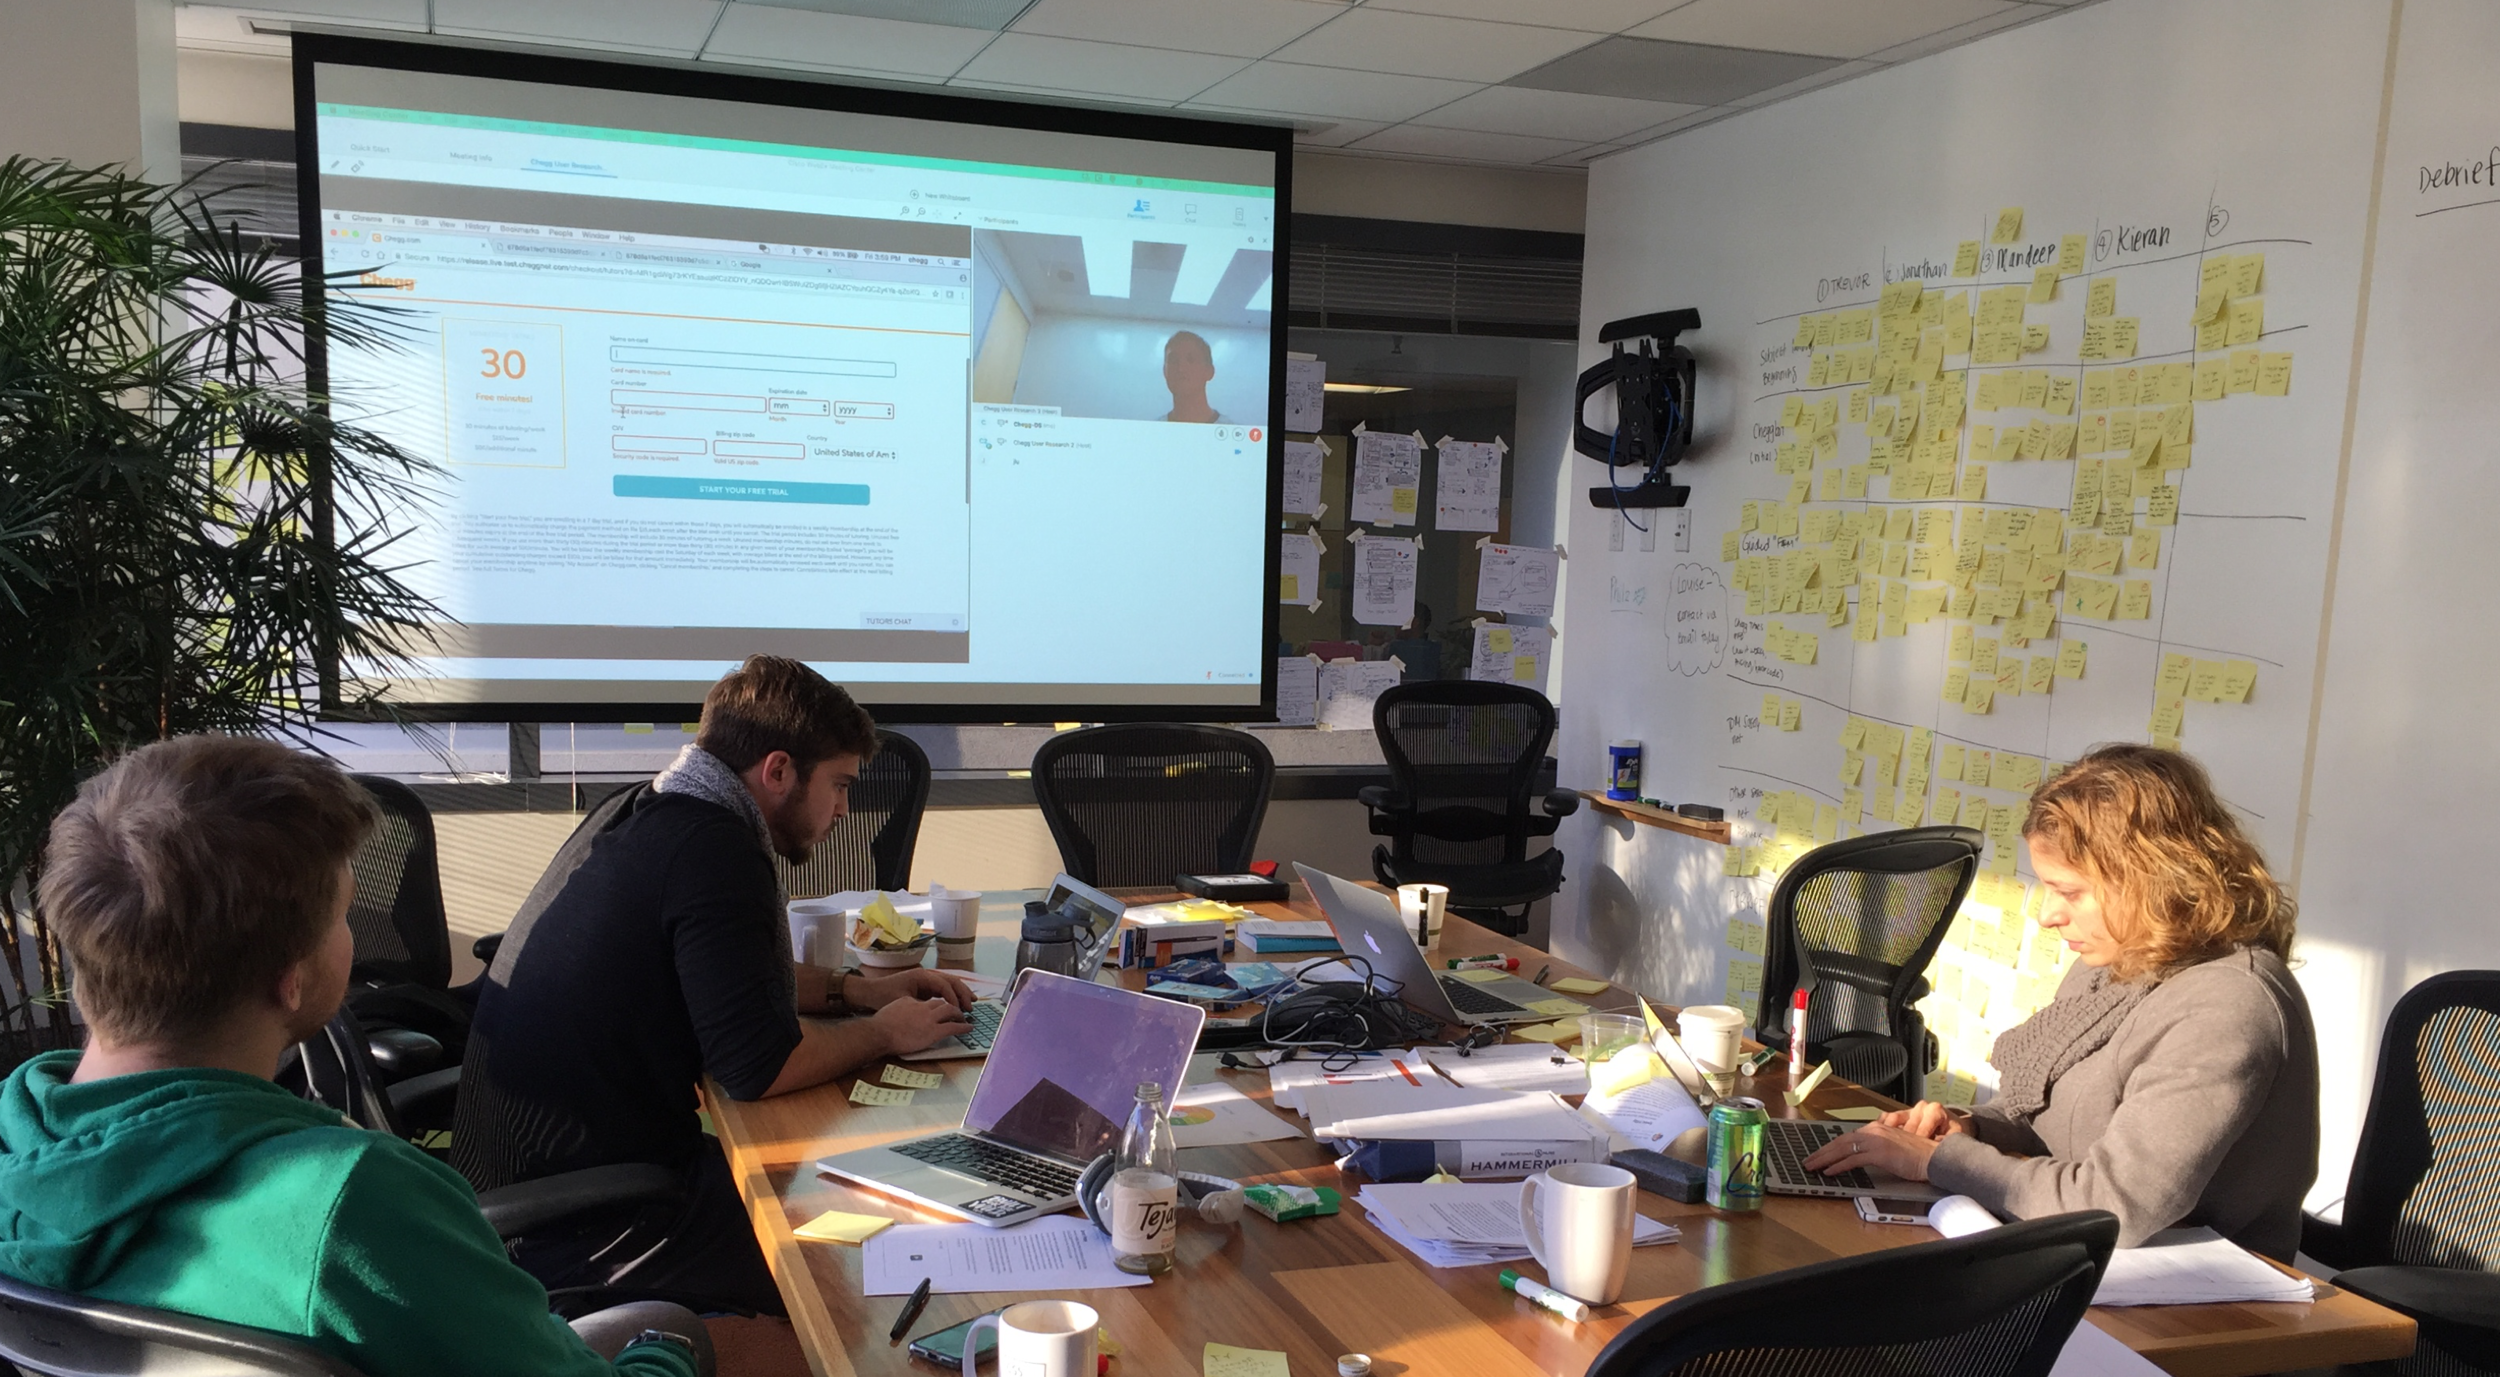 user research - Tested the prototype with five users and learned that some were fine with chatting with chatbot, but all just really wanted to talk to a tutor, or a human.Shared notetaking (on the right wall) is a really cool way to internalize findings as a group!